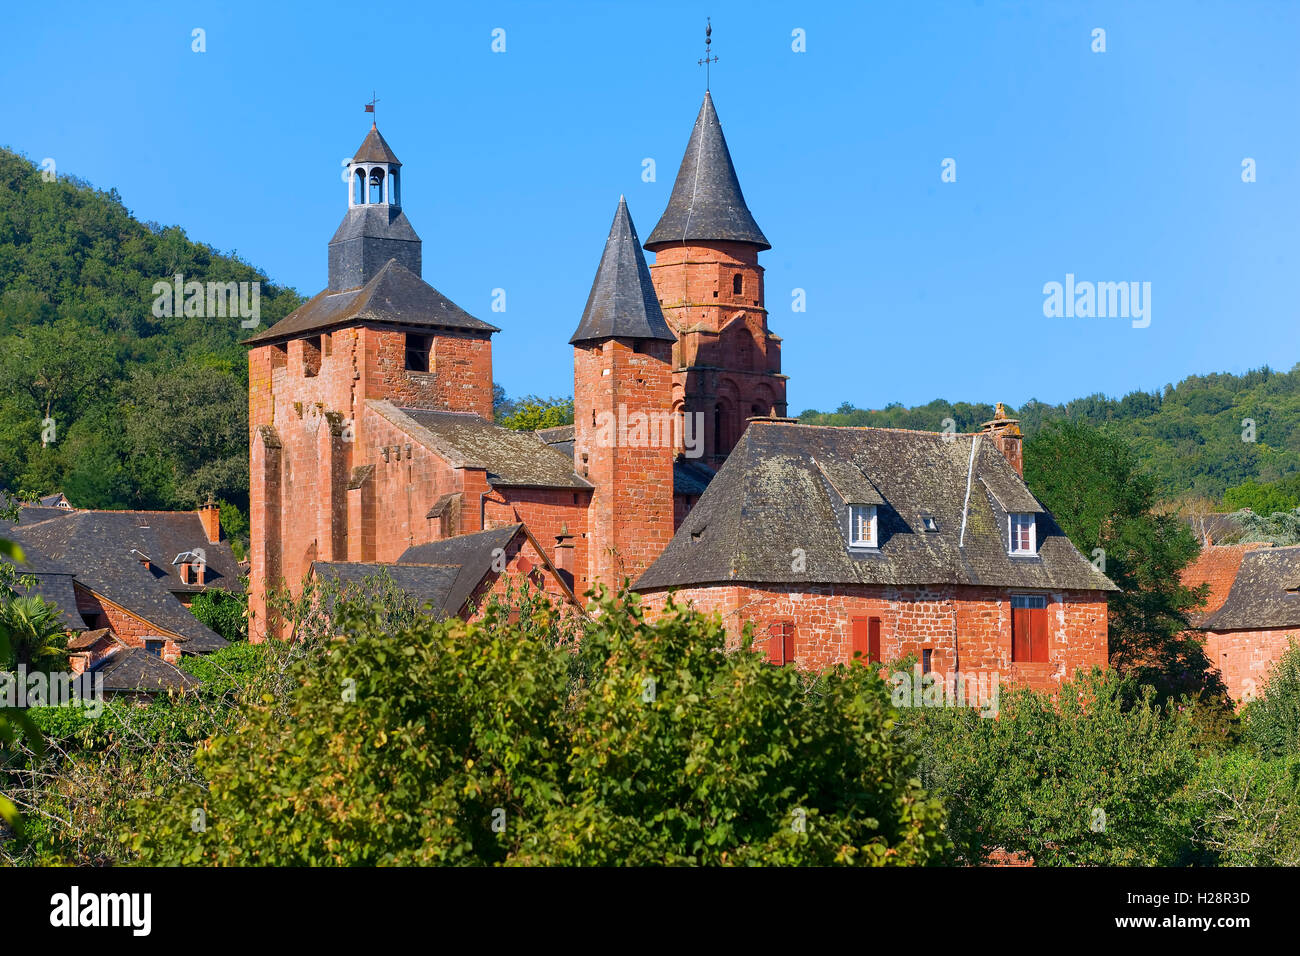 Collonges-la-Rouge village in Correze, France - Stock Image